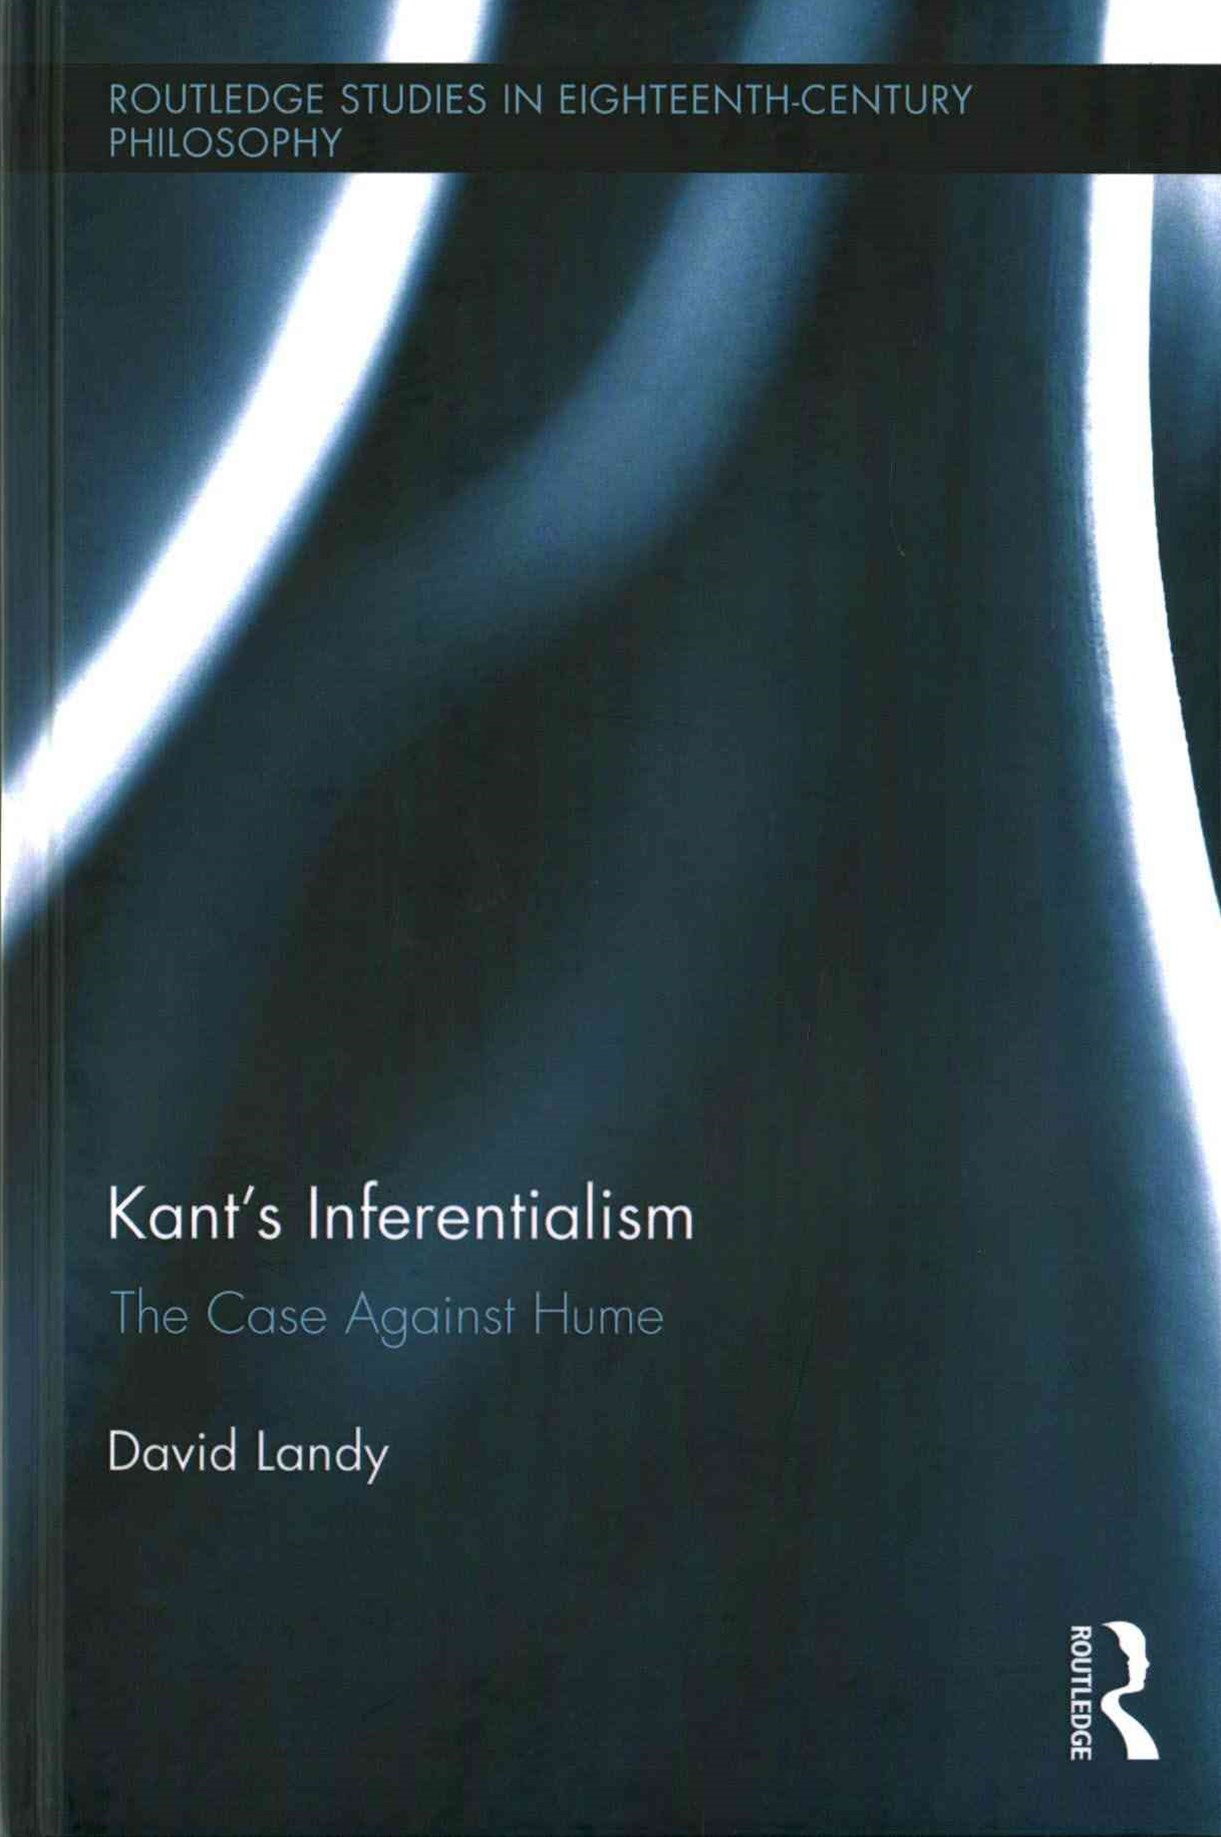 Kant's Inferentialism